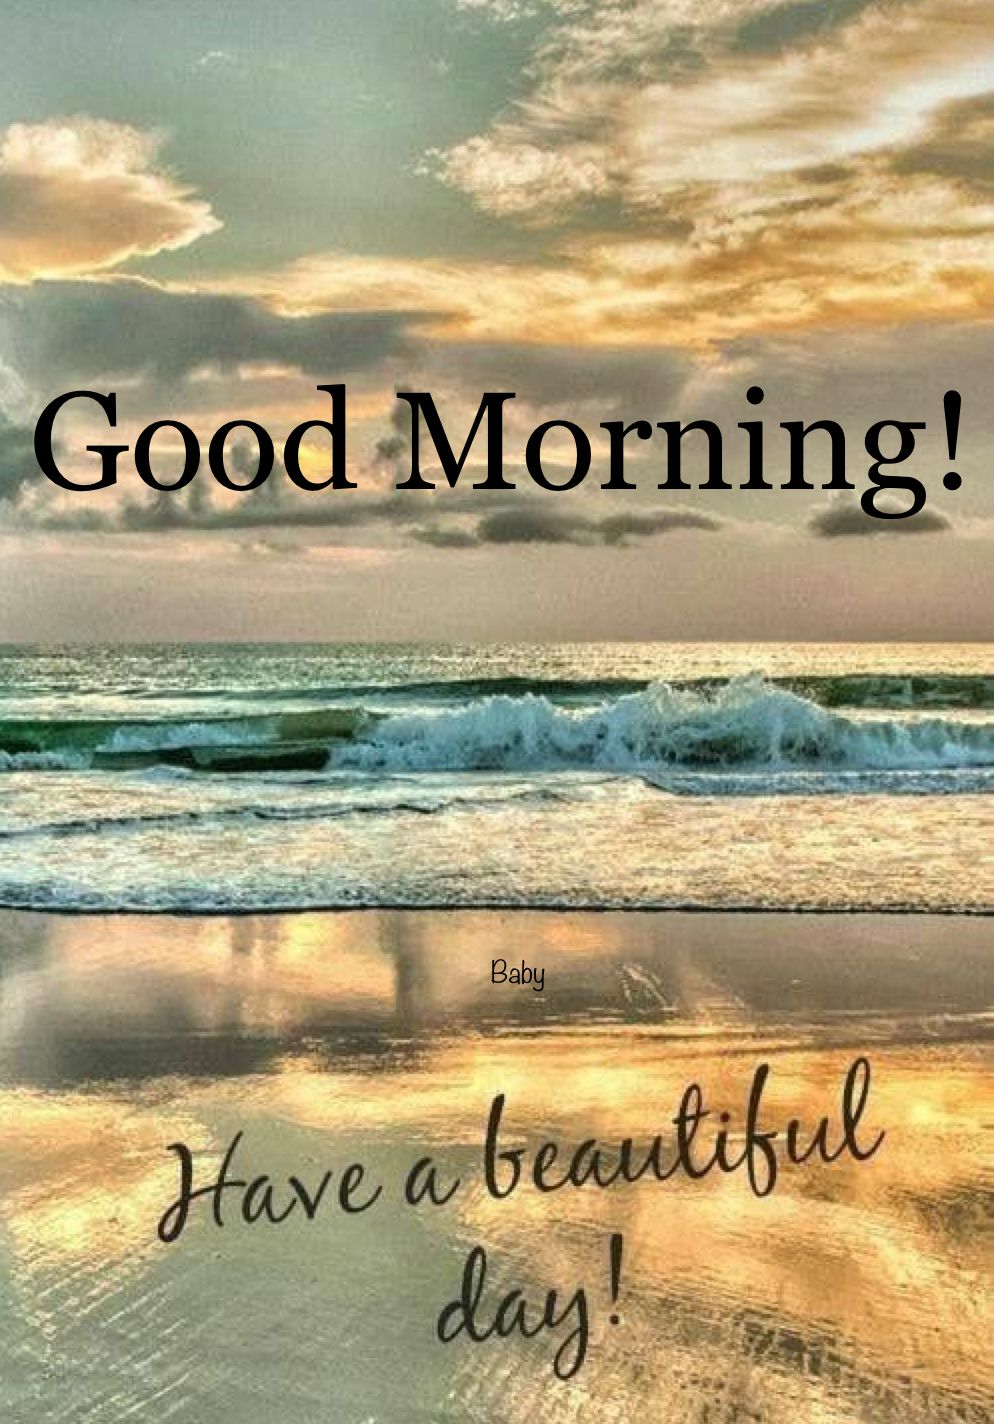 Good Morning Gorgeous Meme : morning, gorgeous, Morning!, Morning, Beautiful, Quotes,, Images,, Happy, Quotes